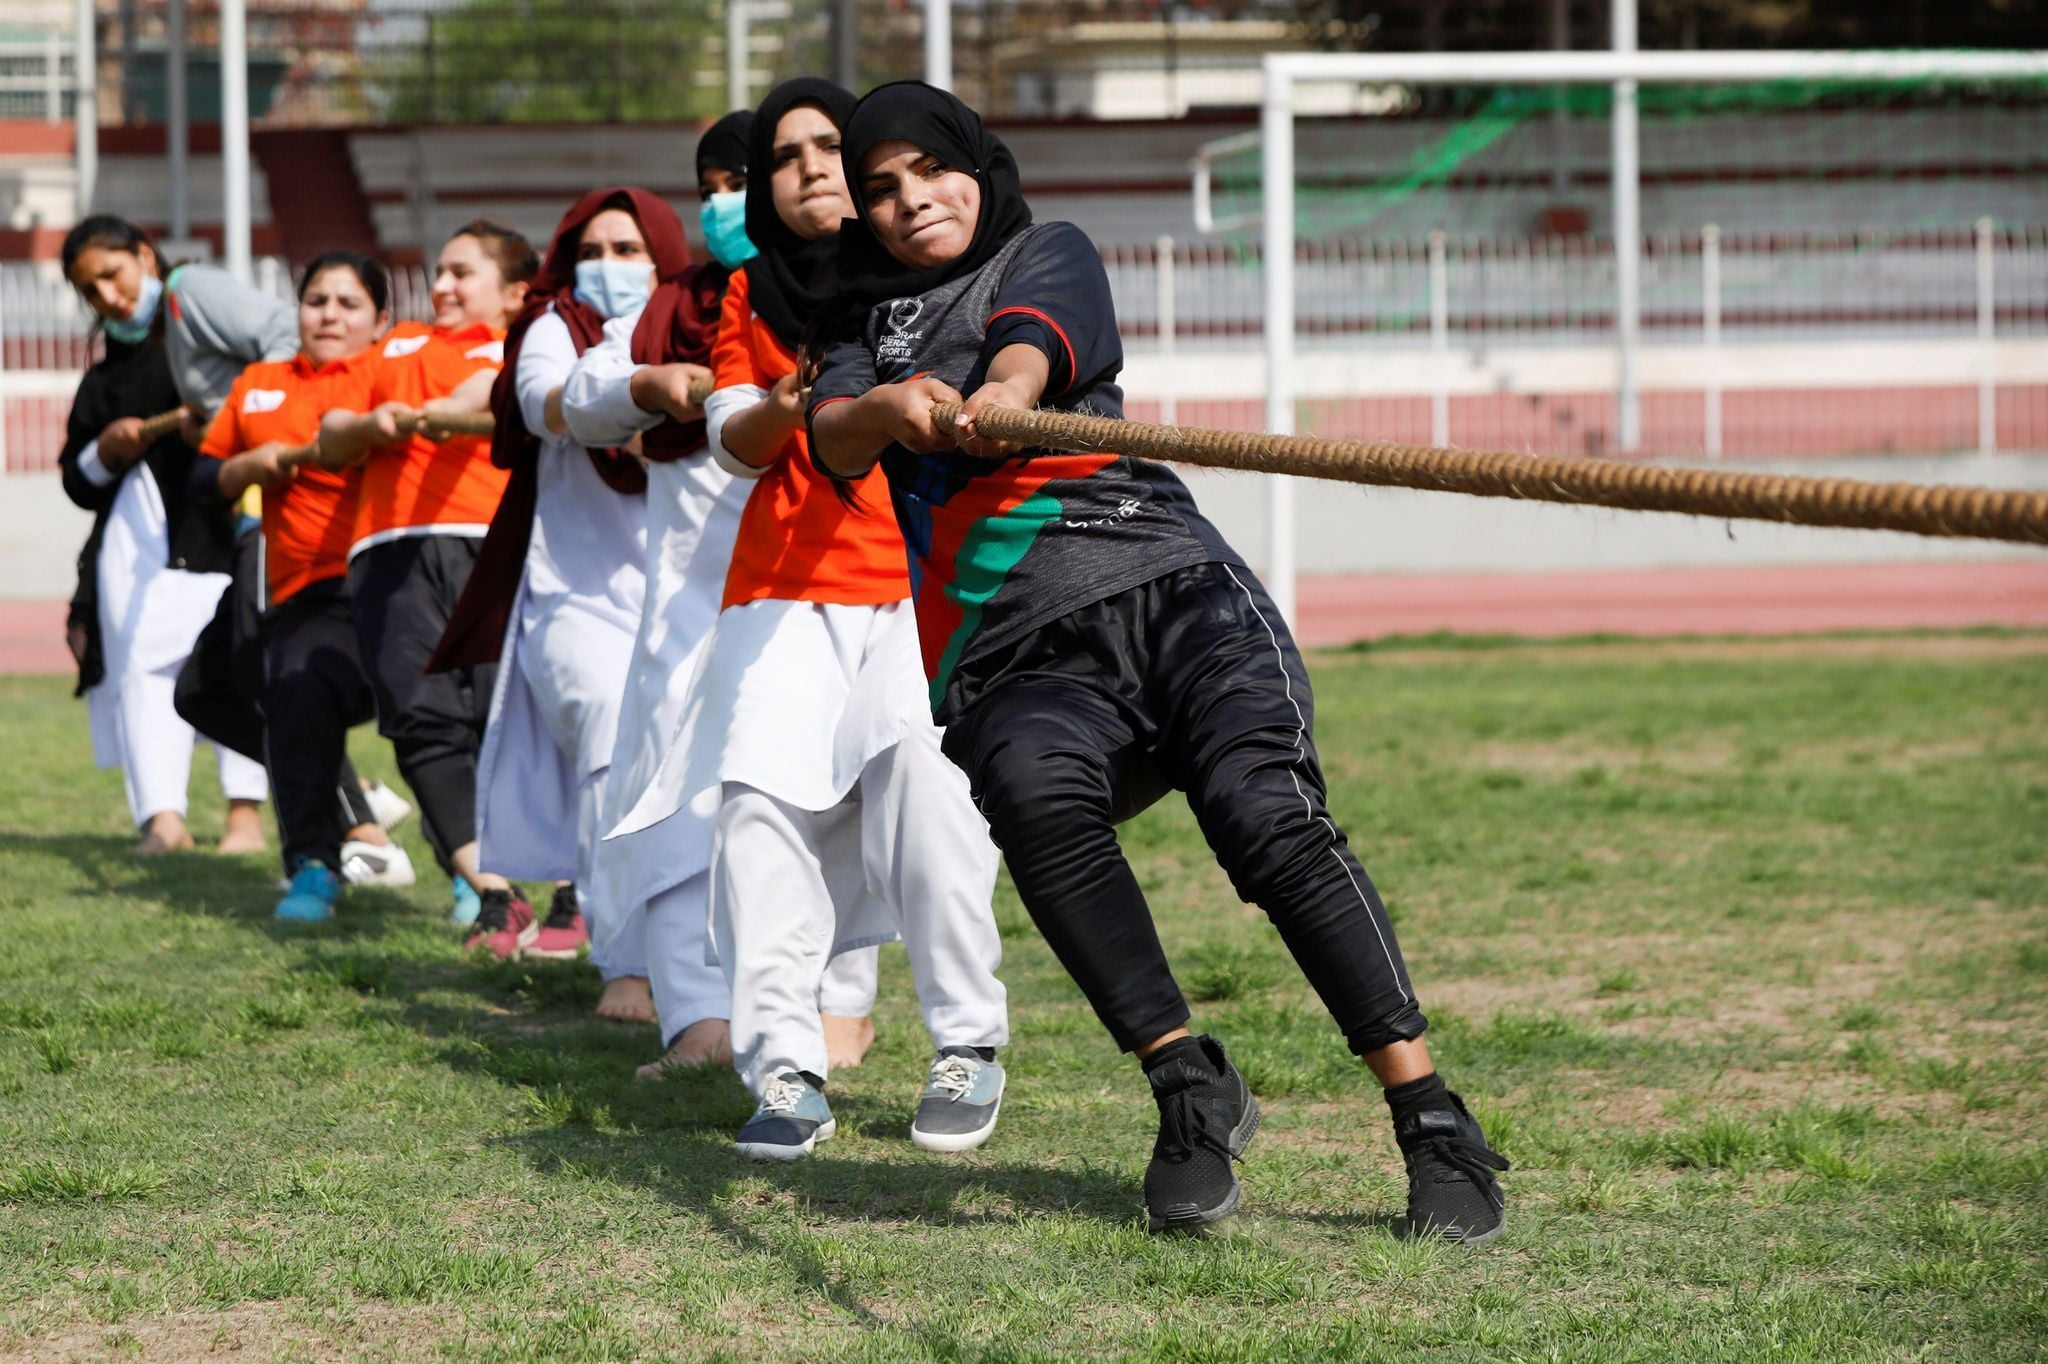 Participants react as they pull a rope during a sports event in connection with the International Women's Day celebrations in Peshawar, March 8. — Reuters